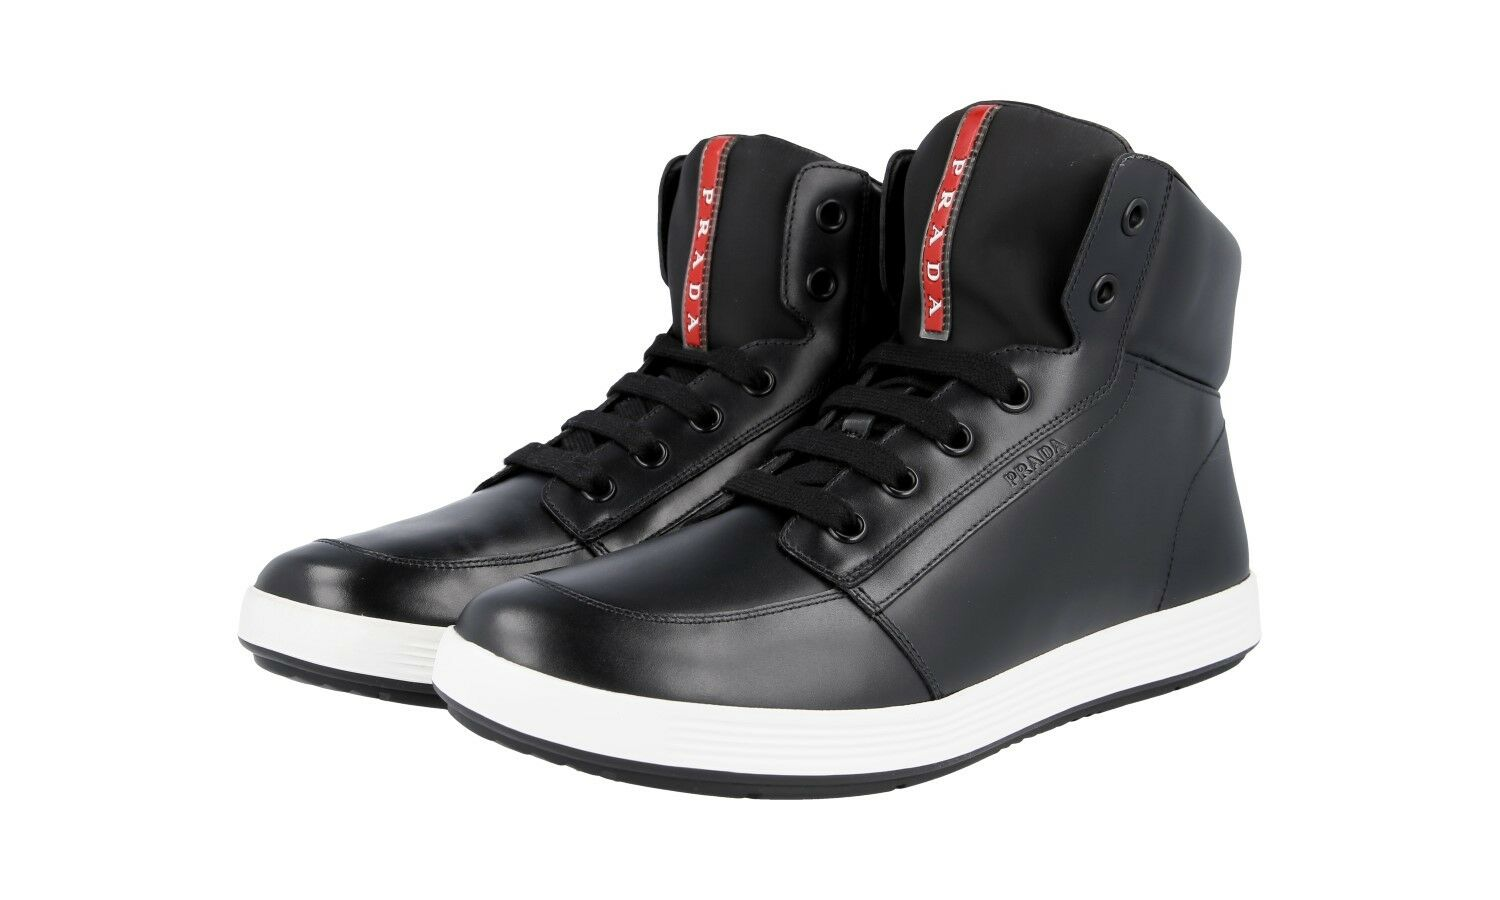 shoes PRADA LUSSO 4T2843 black NUOVE 9 43 43,5